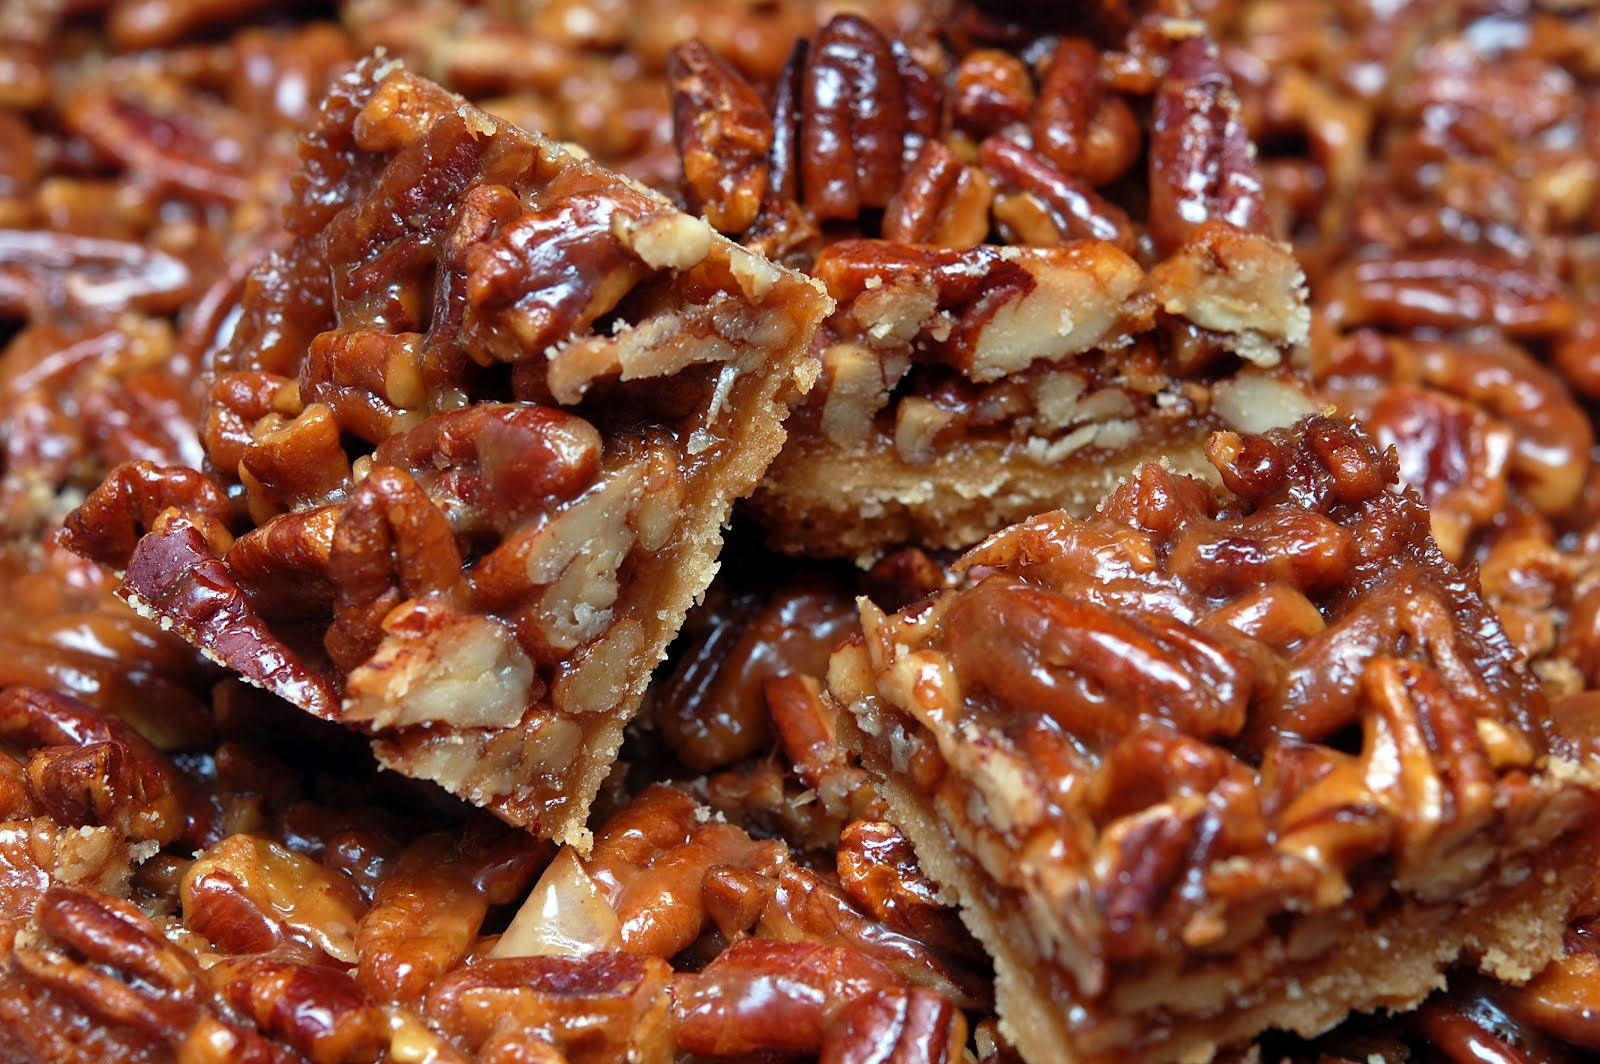 PECAN PIE SHORTBREAD BARS